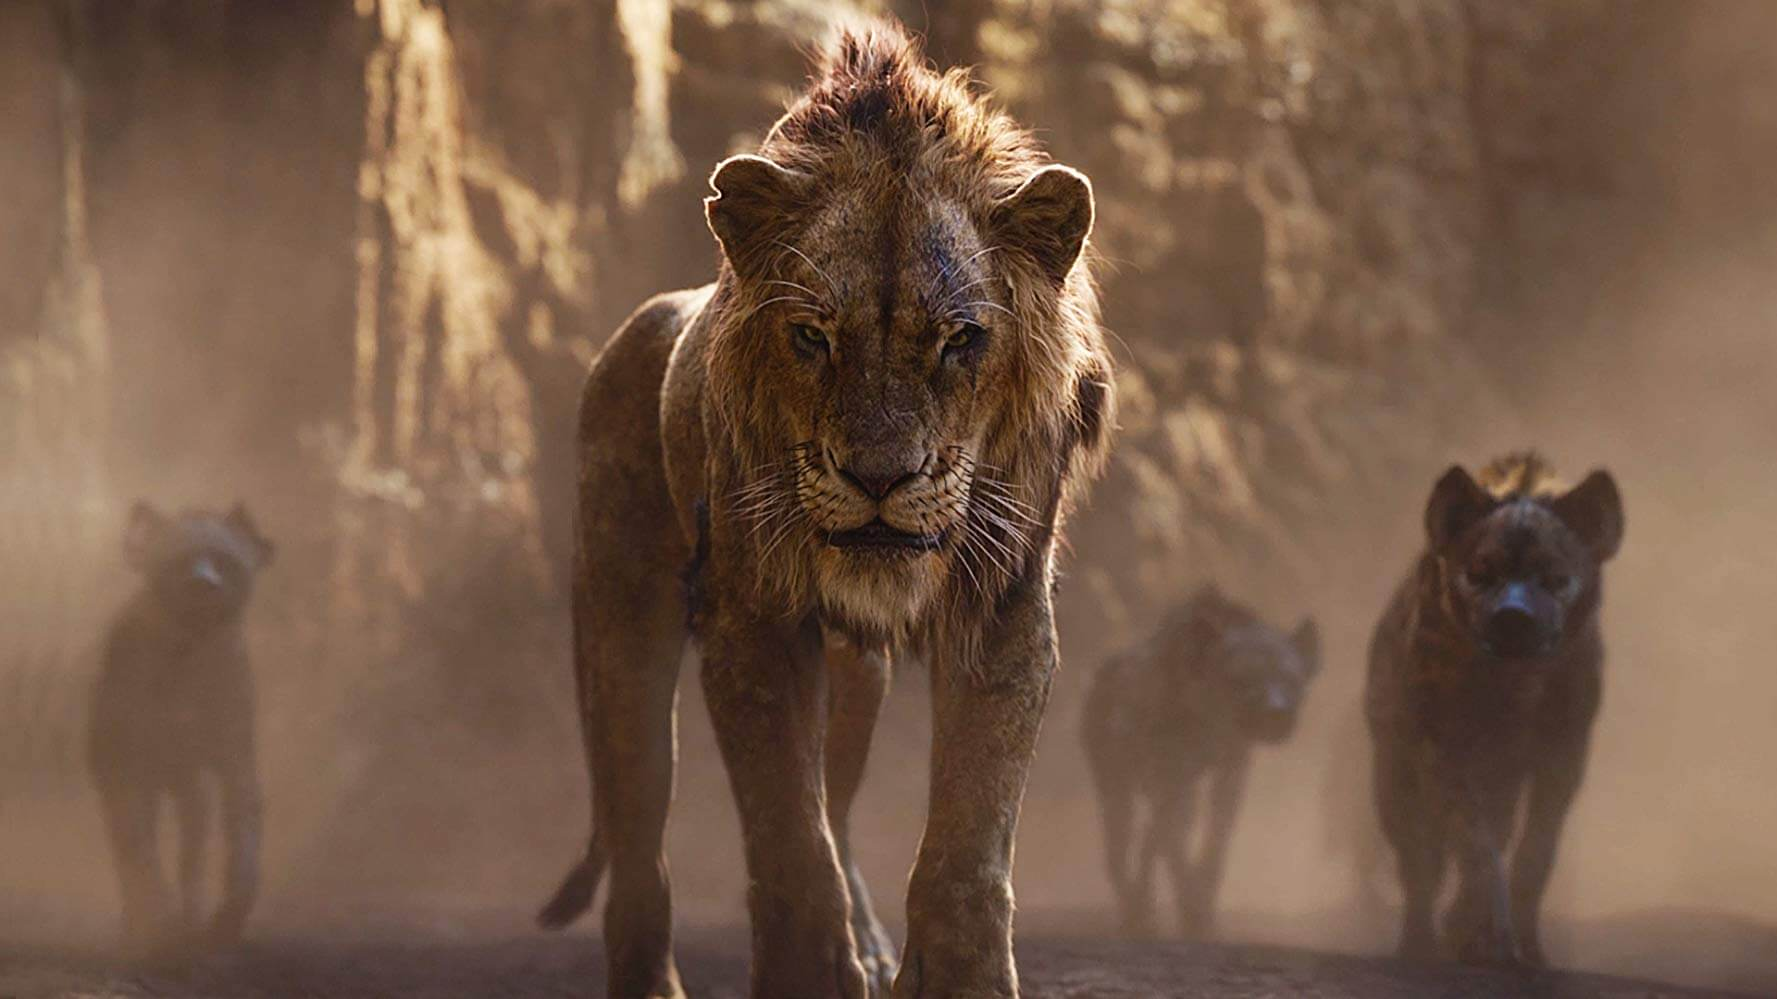 The Lion King posters roll out the stars of Disney's animal kingdom